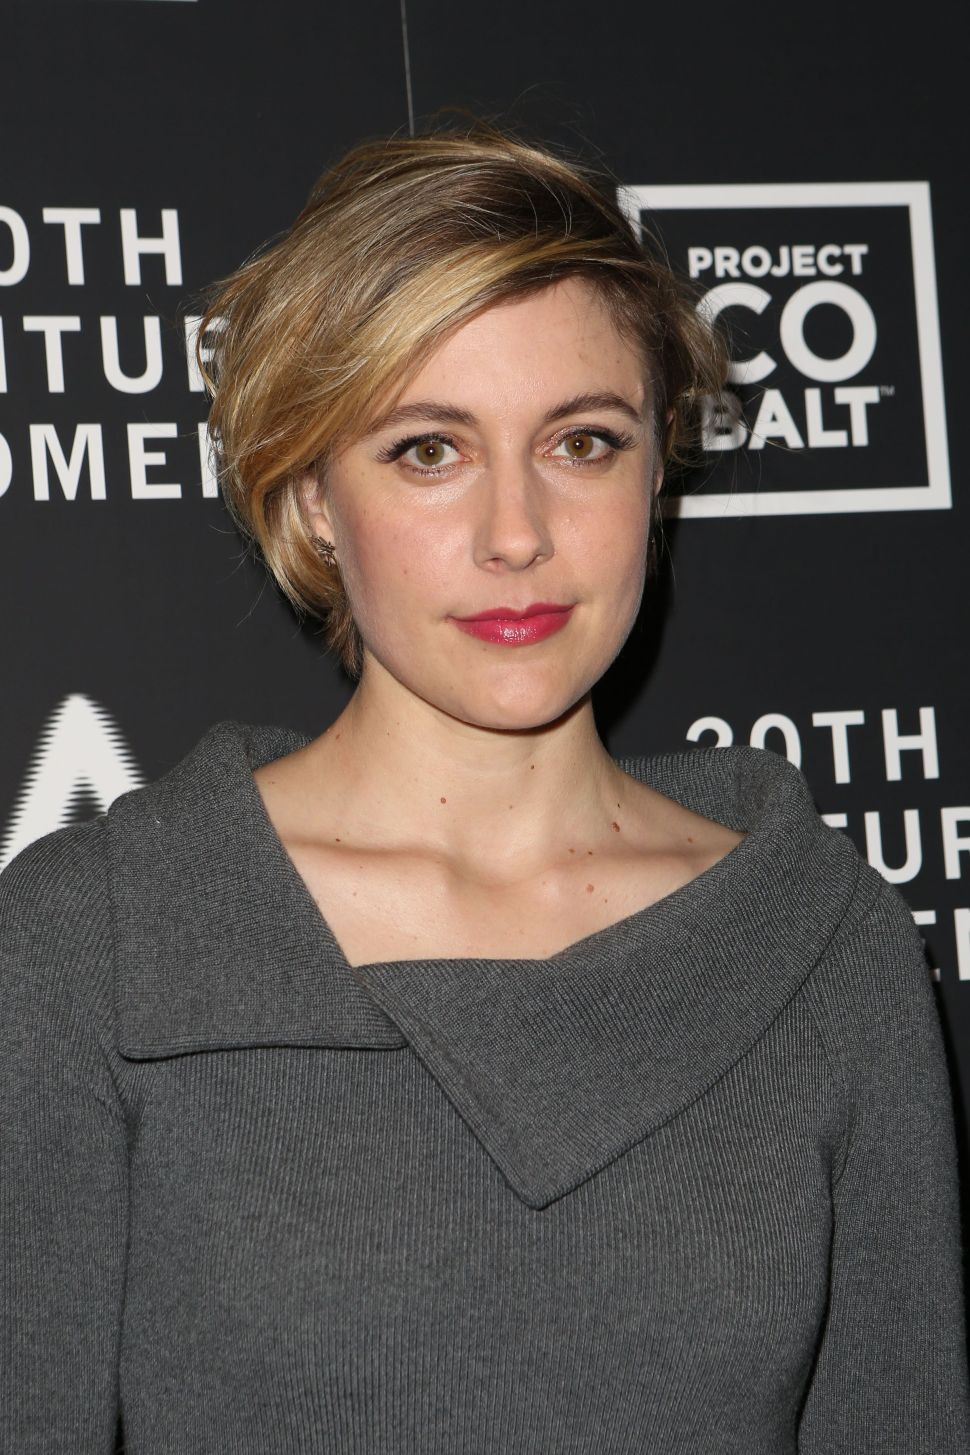 Glorious Greta: Gerwig on Female Co-stars, Sexual Role Play in '20th Century Women'